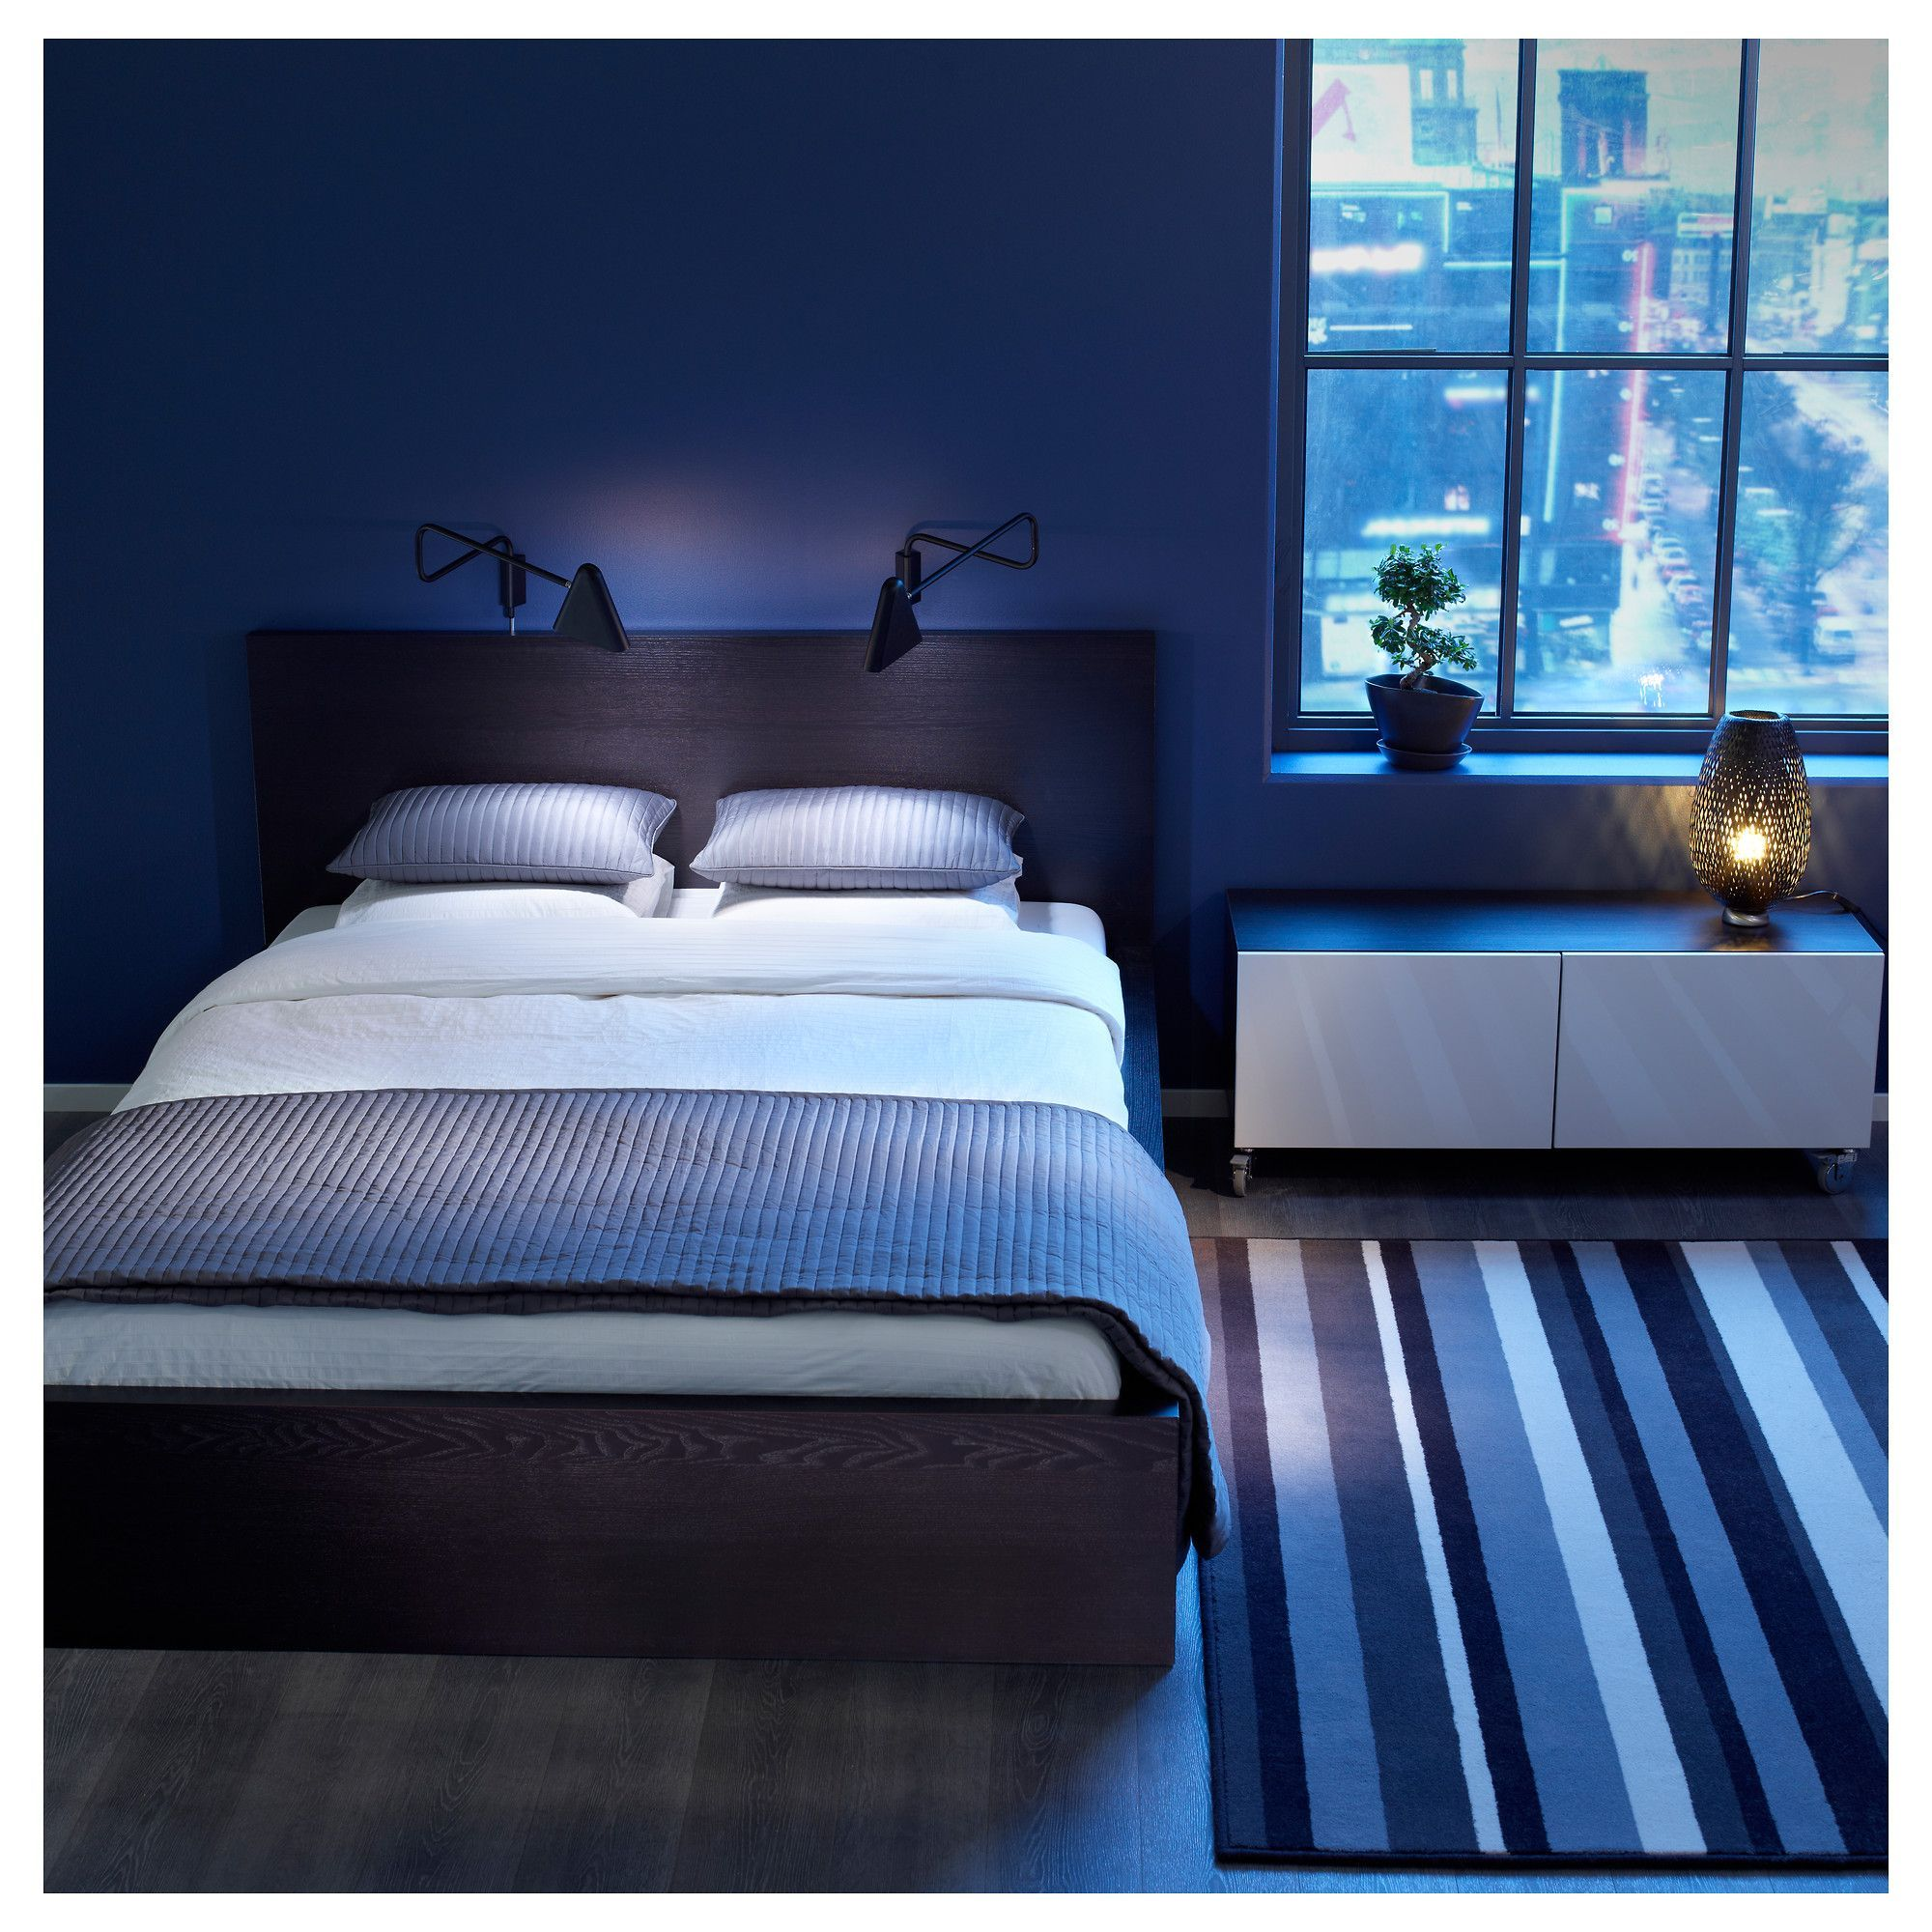 Wh what are good colors for bedrooms - Simple Modern Bedroom For Men With Wooden Bed And Lighting Decorating Plus